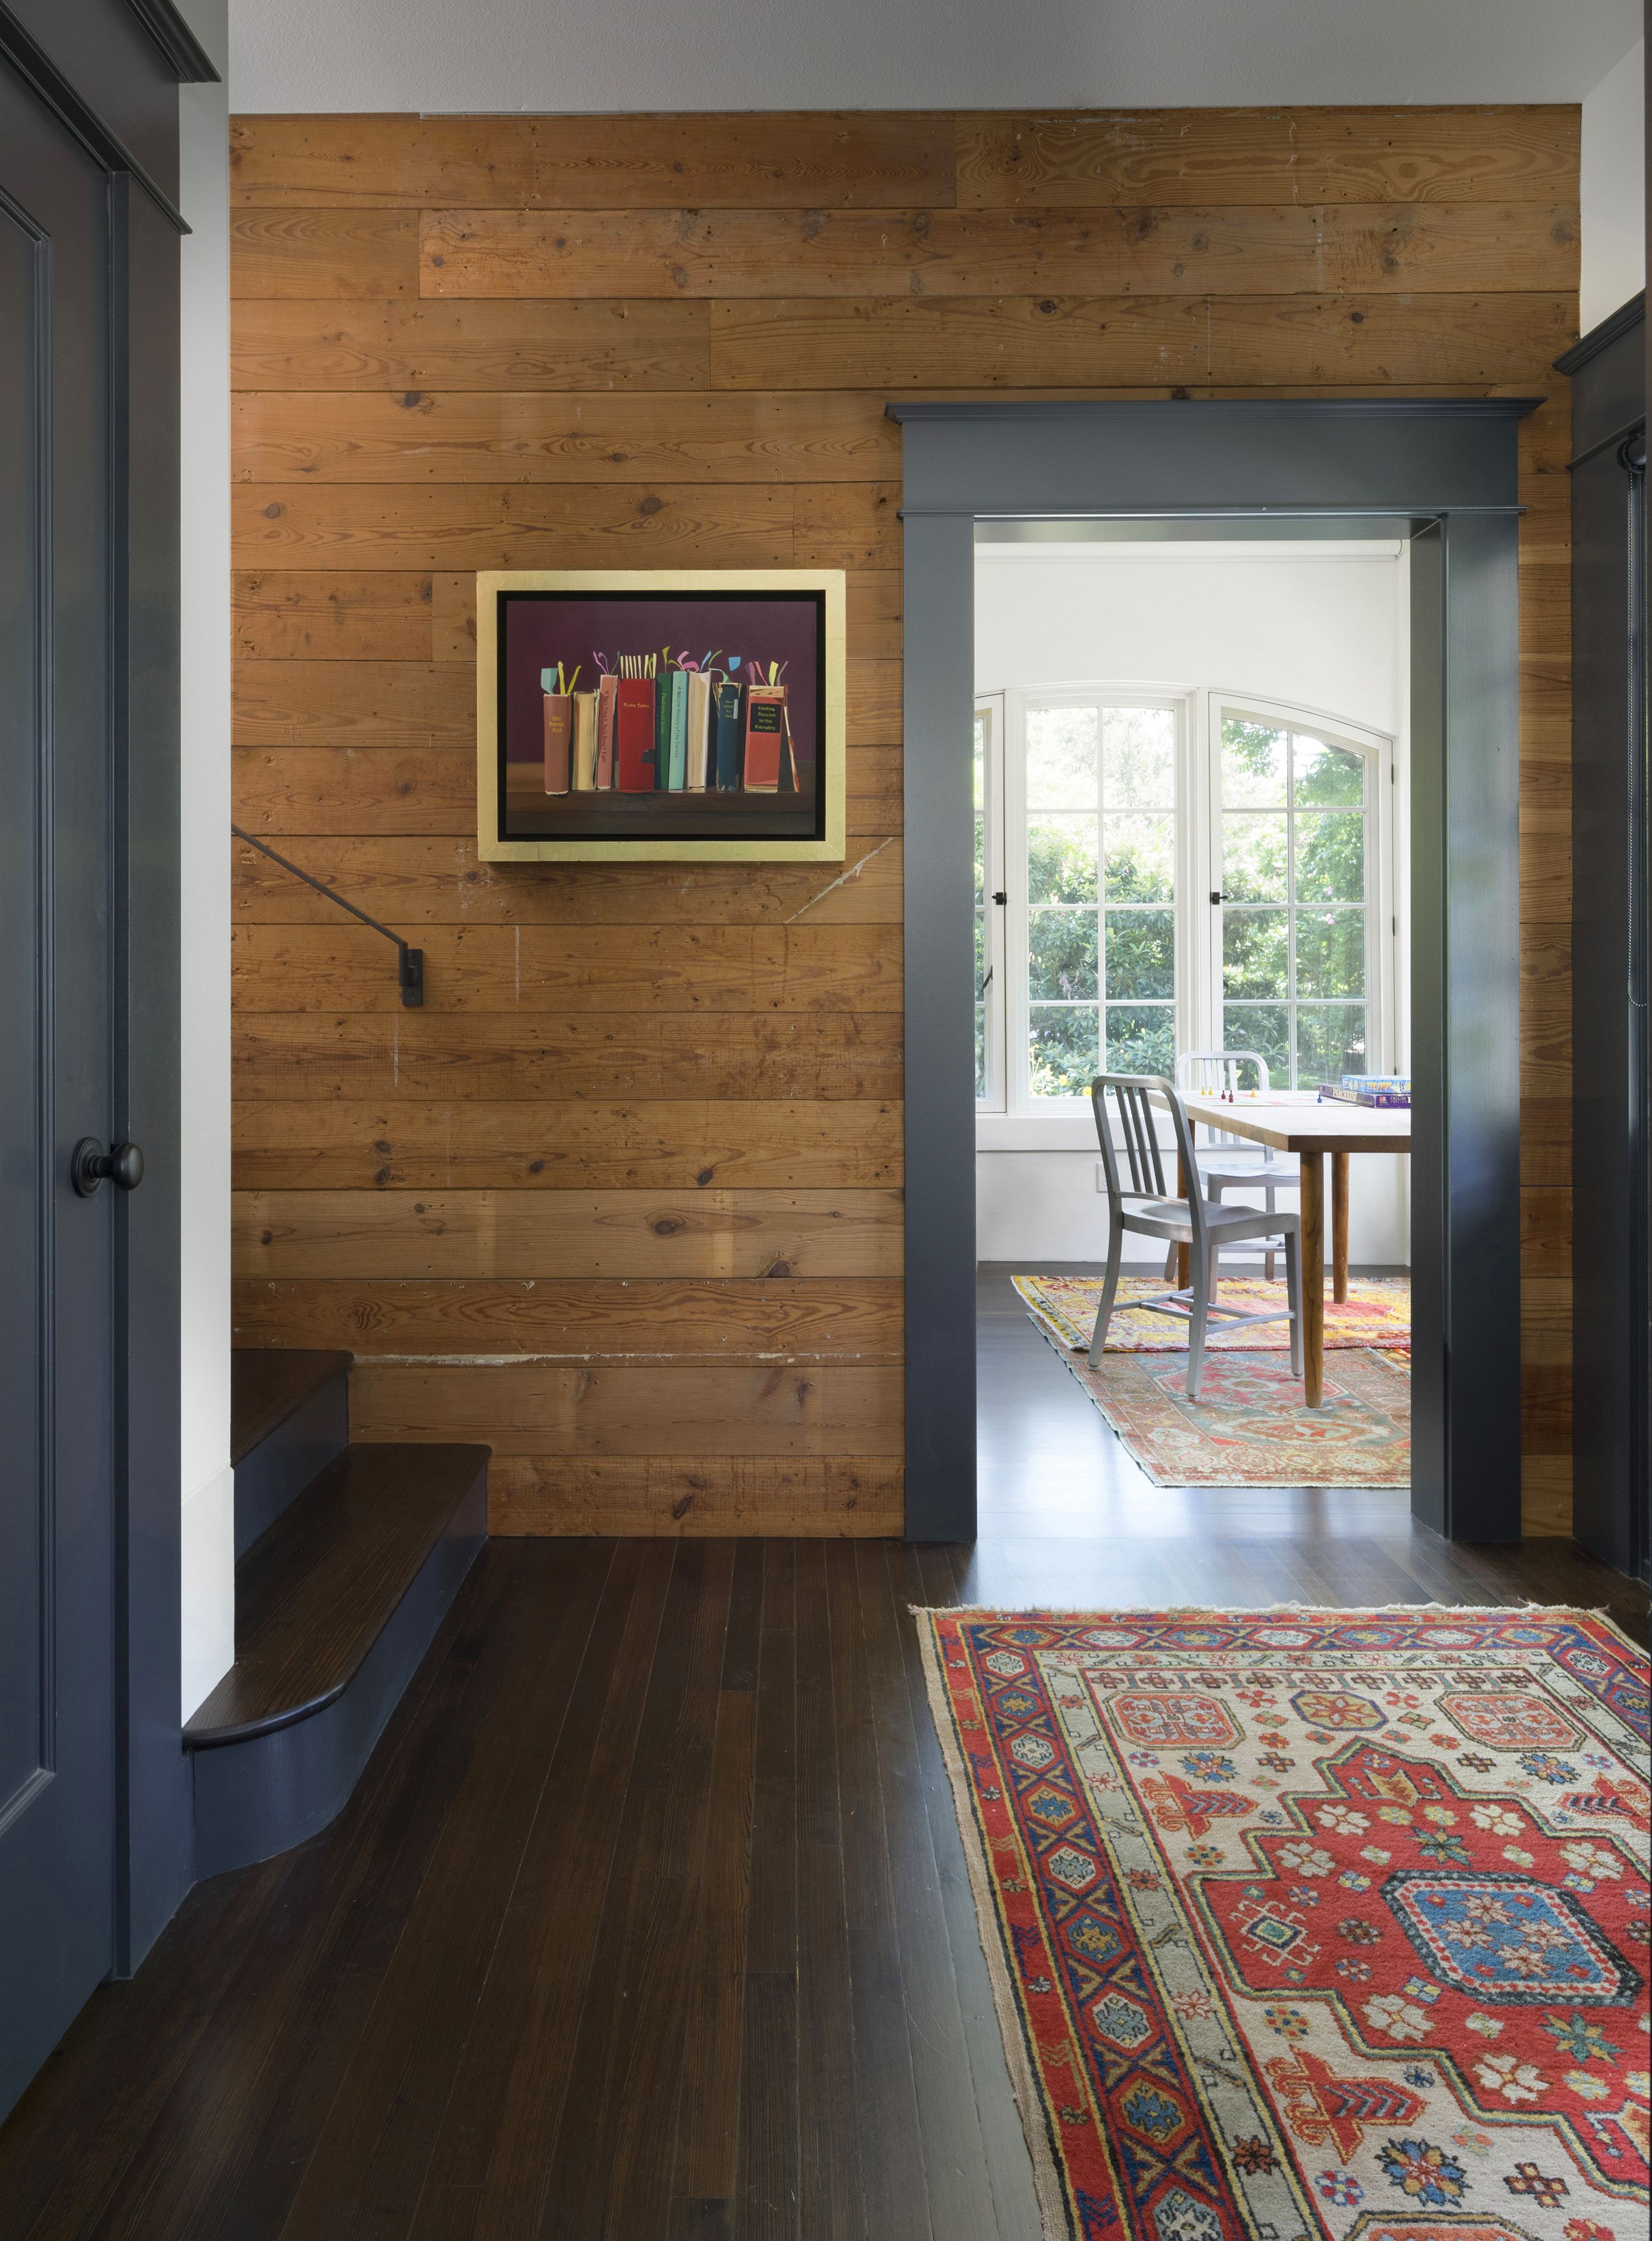 Shiplap Knotty Pine - Year of Clean Water